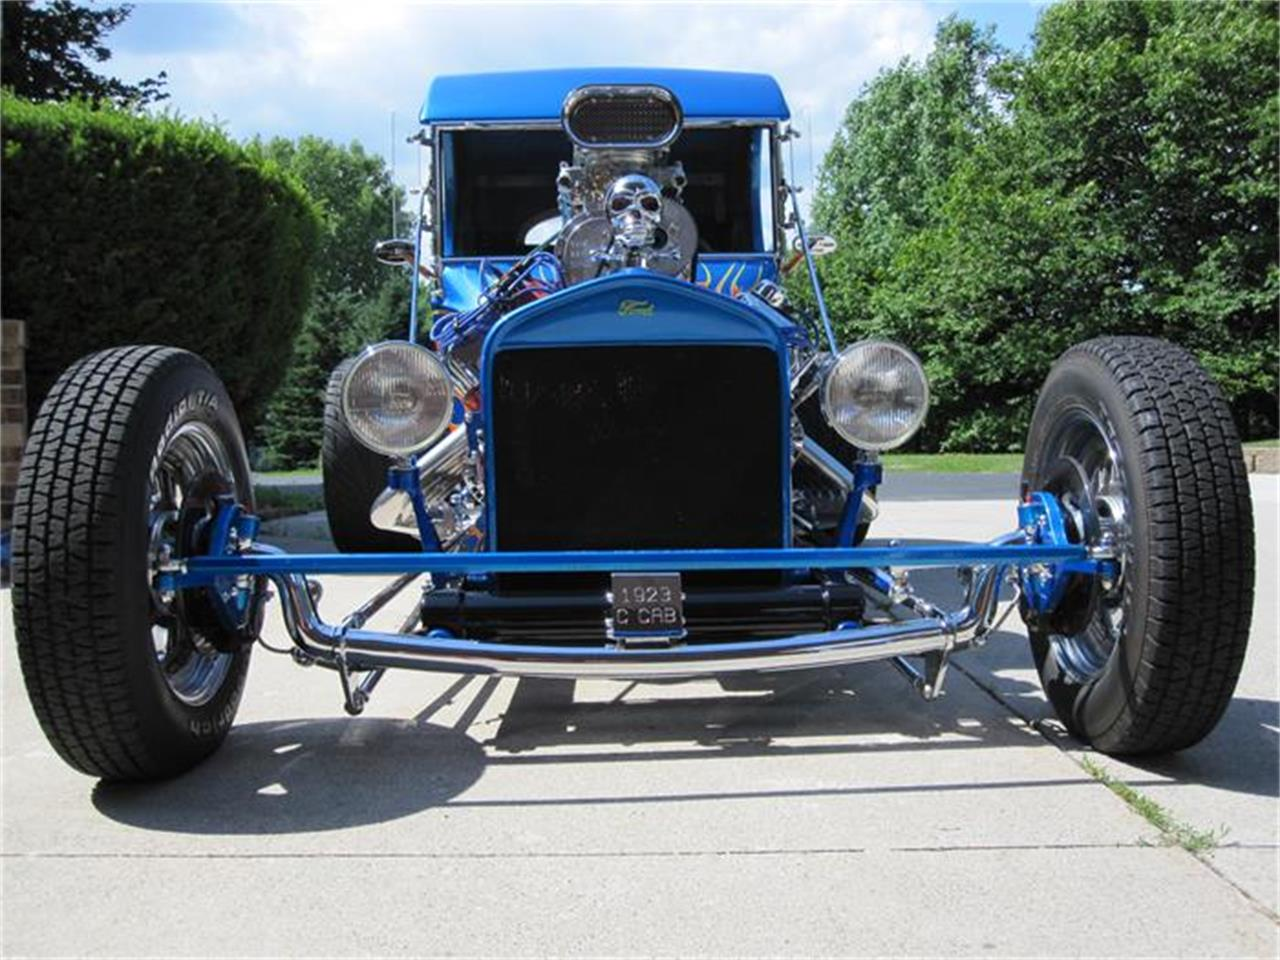 Large Picture of 1923 Ford Pickup - $79,000.00 - AZCK